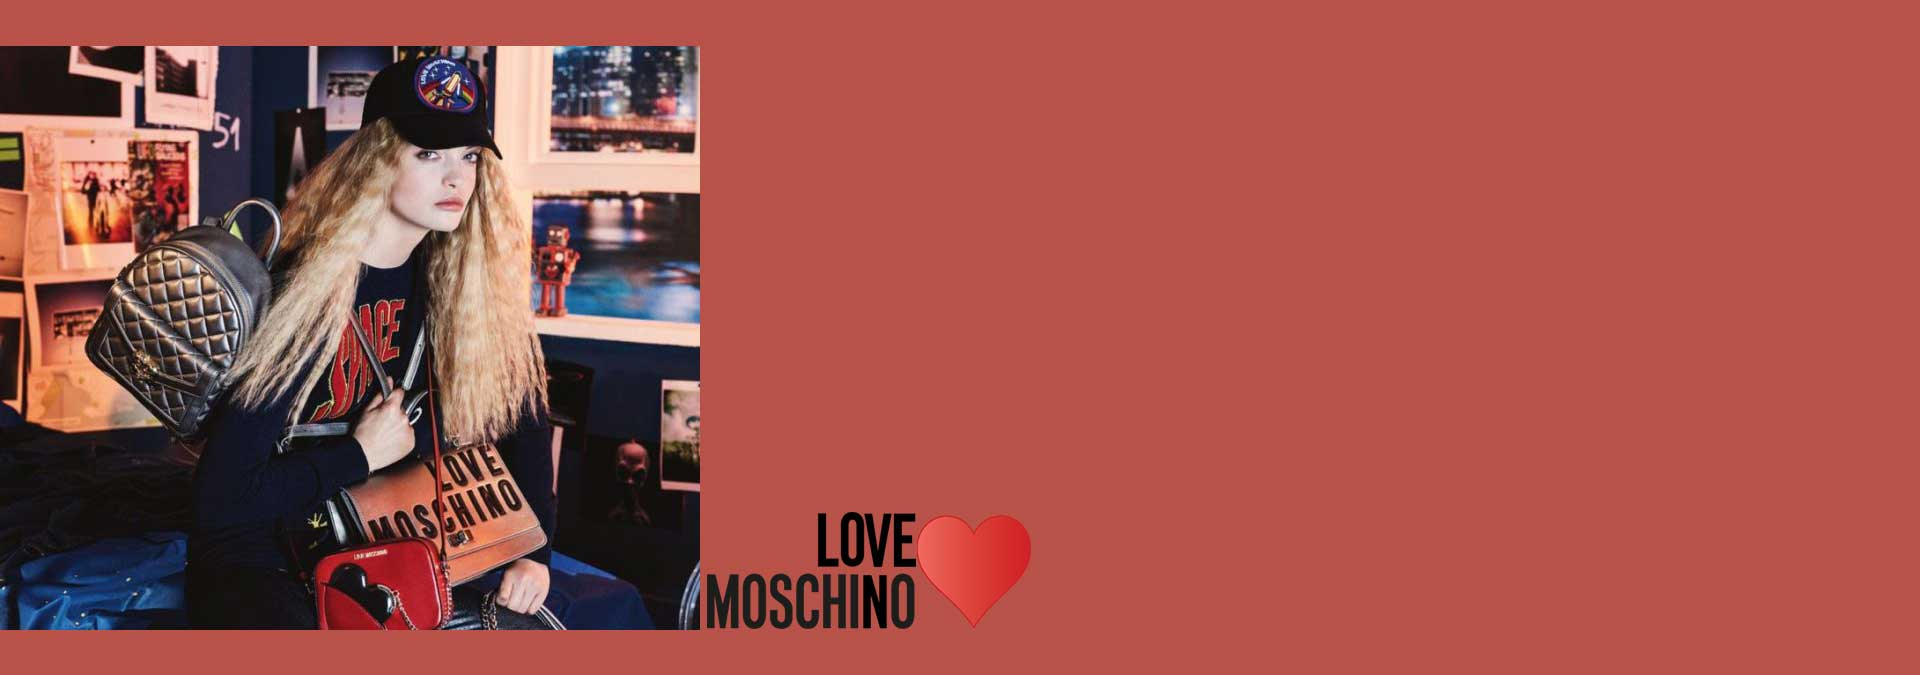 slide2-love-moschino